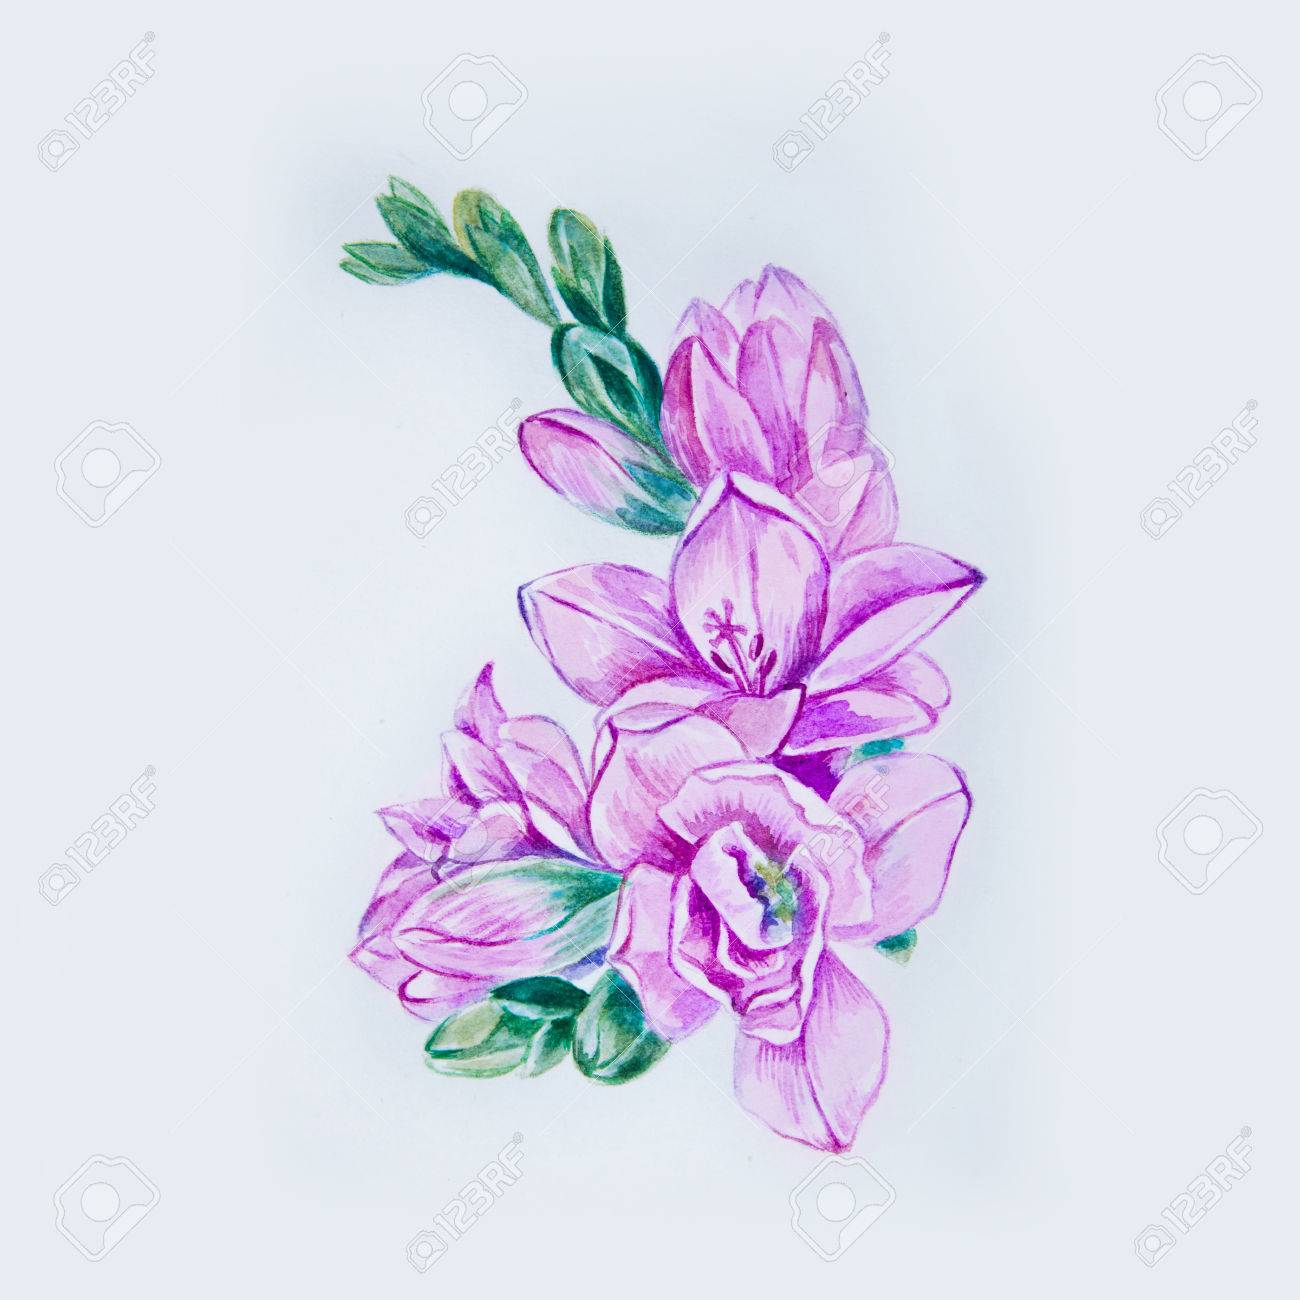 a0261273f Sketch of a beautiful purple freesia flower on a white background. Stock  Photo - 86414189